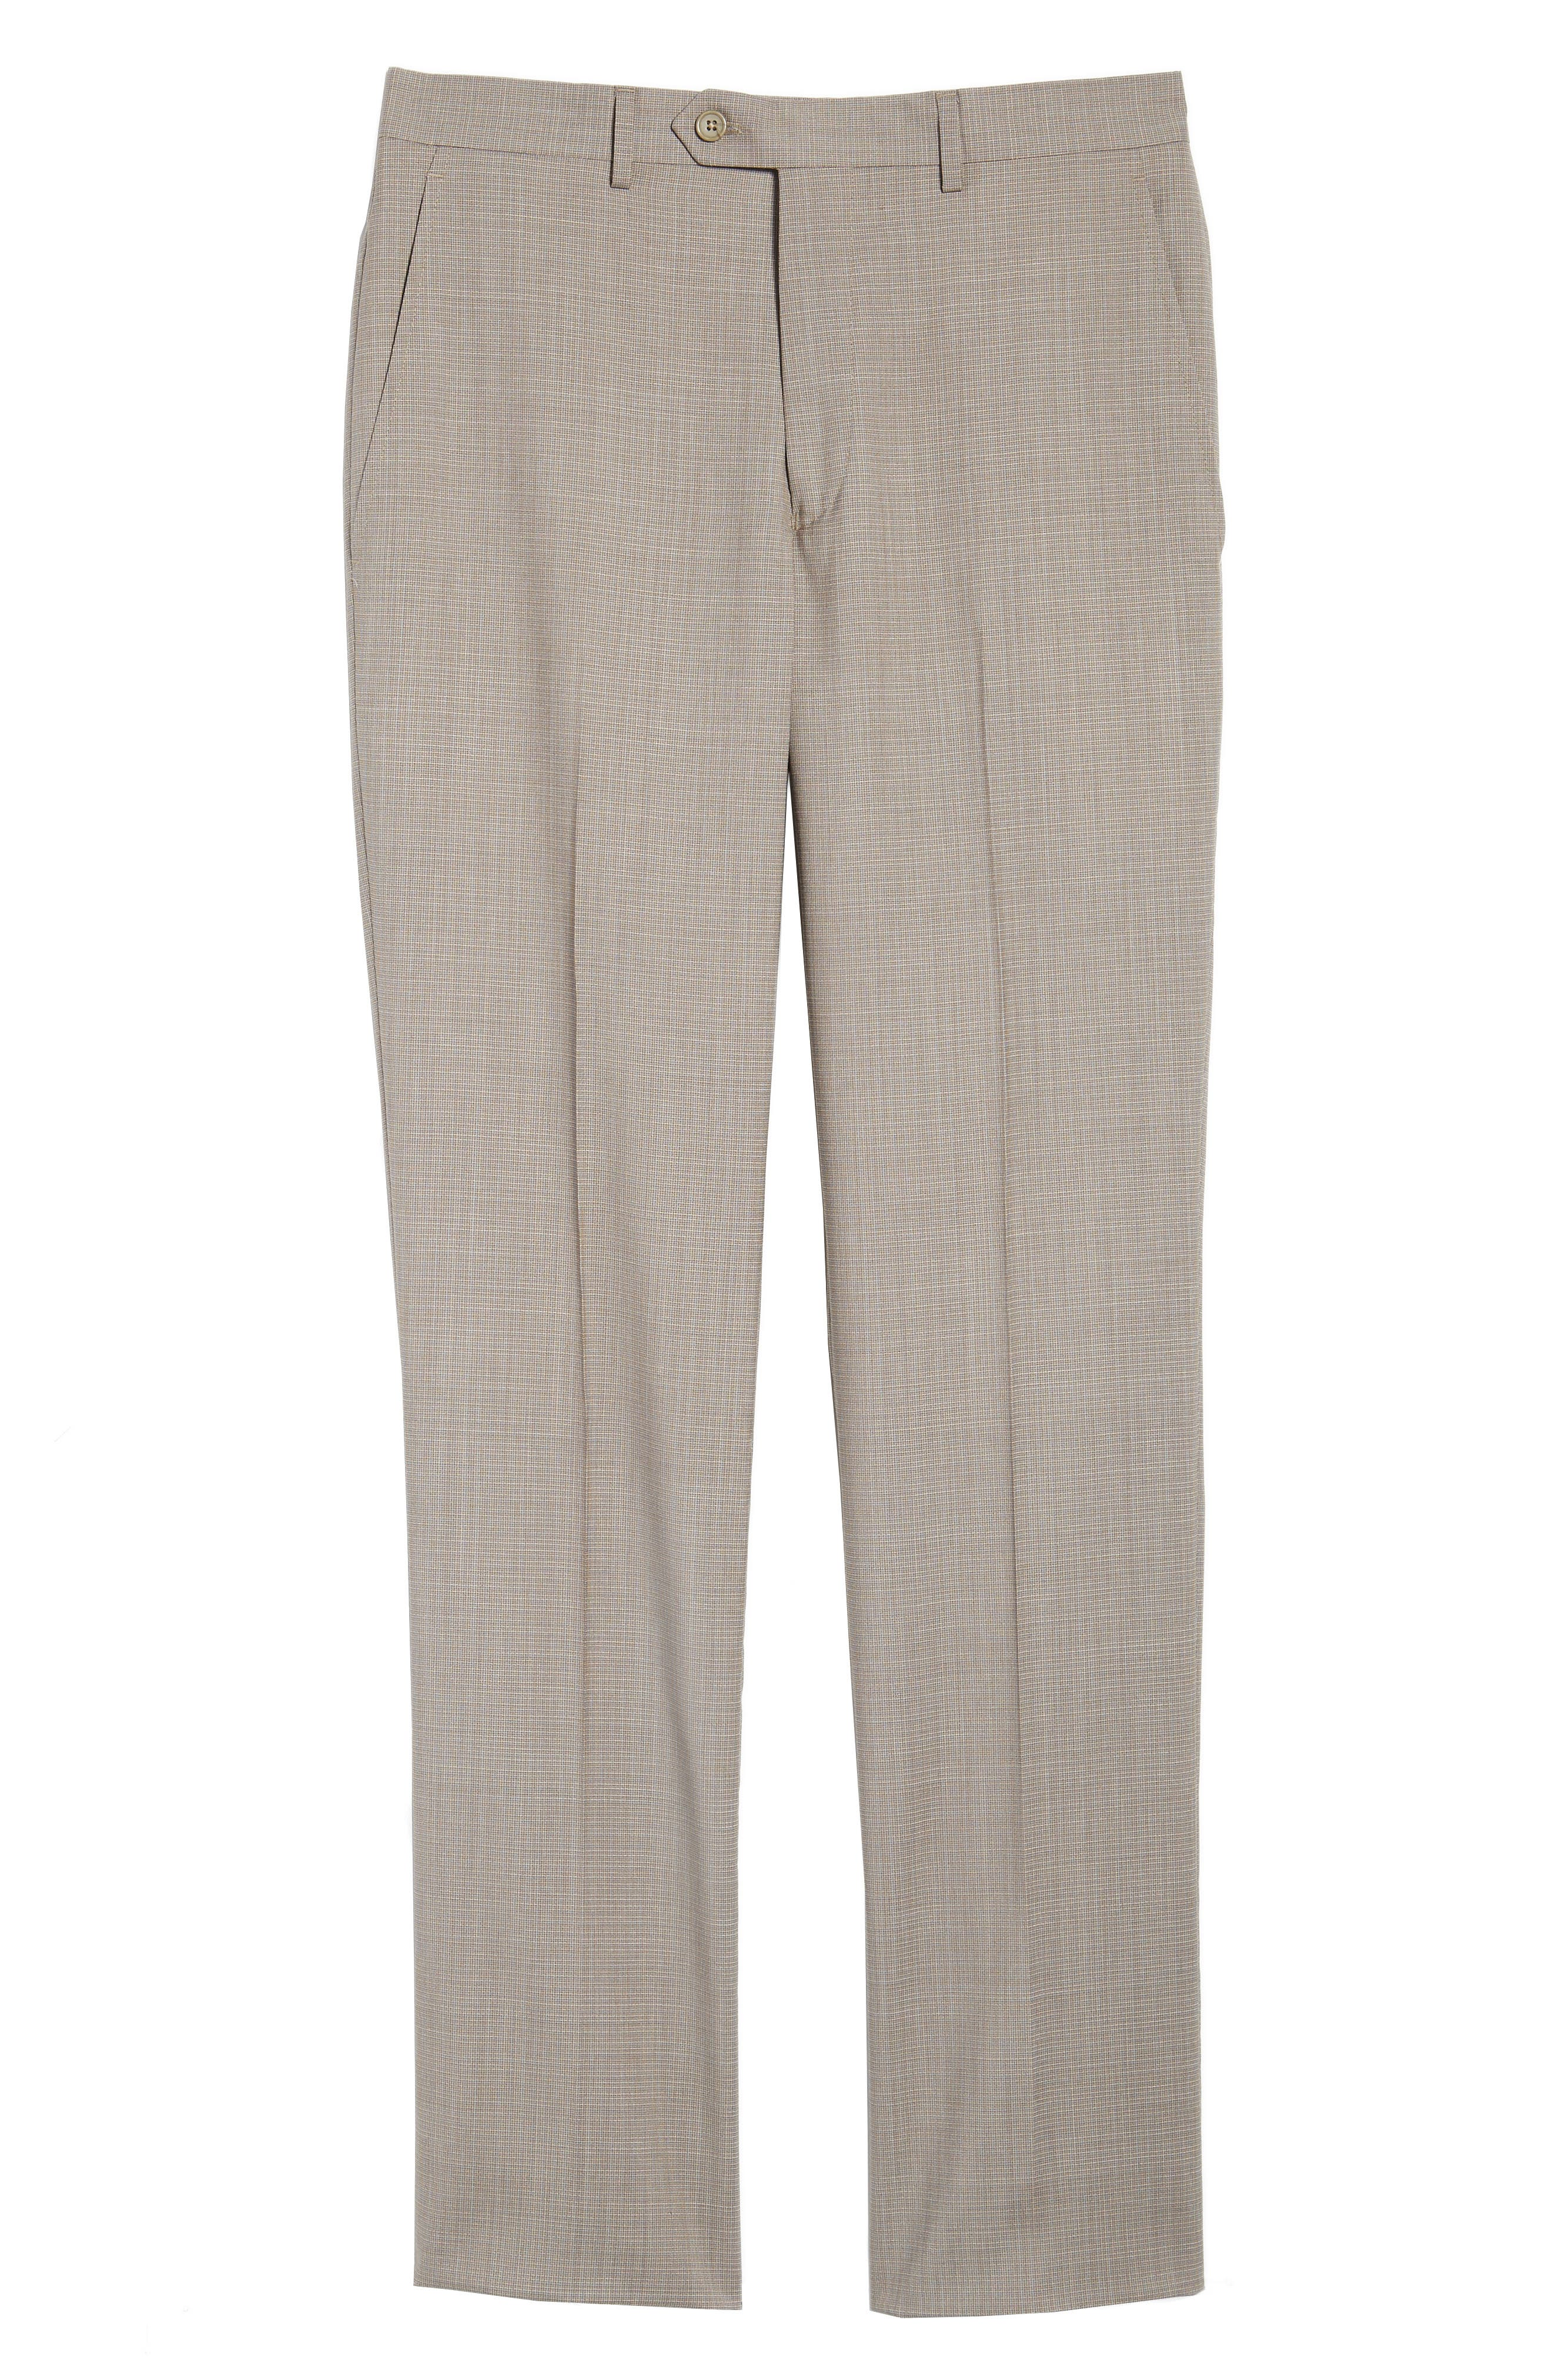 Flat Front Check Wool Trousers,                             Alternate thumbnail 6, color,                             277